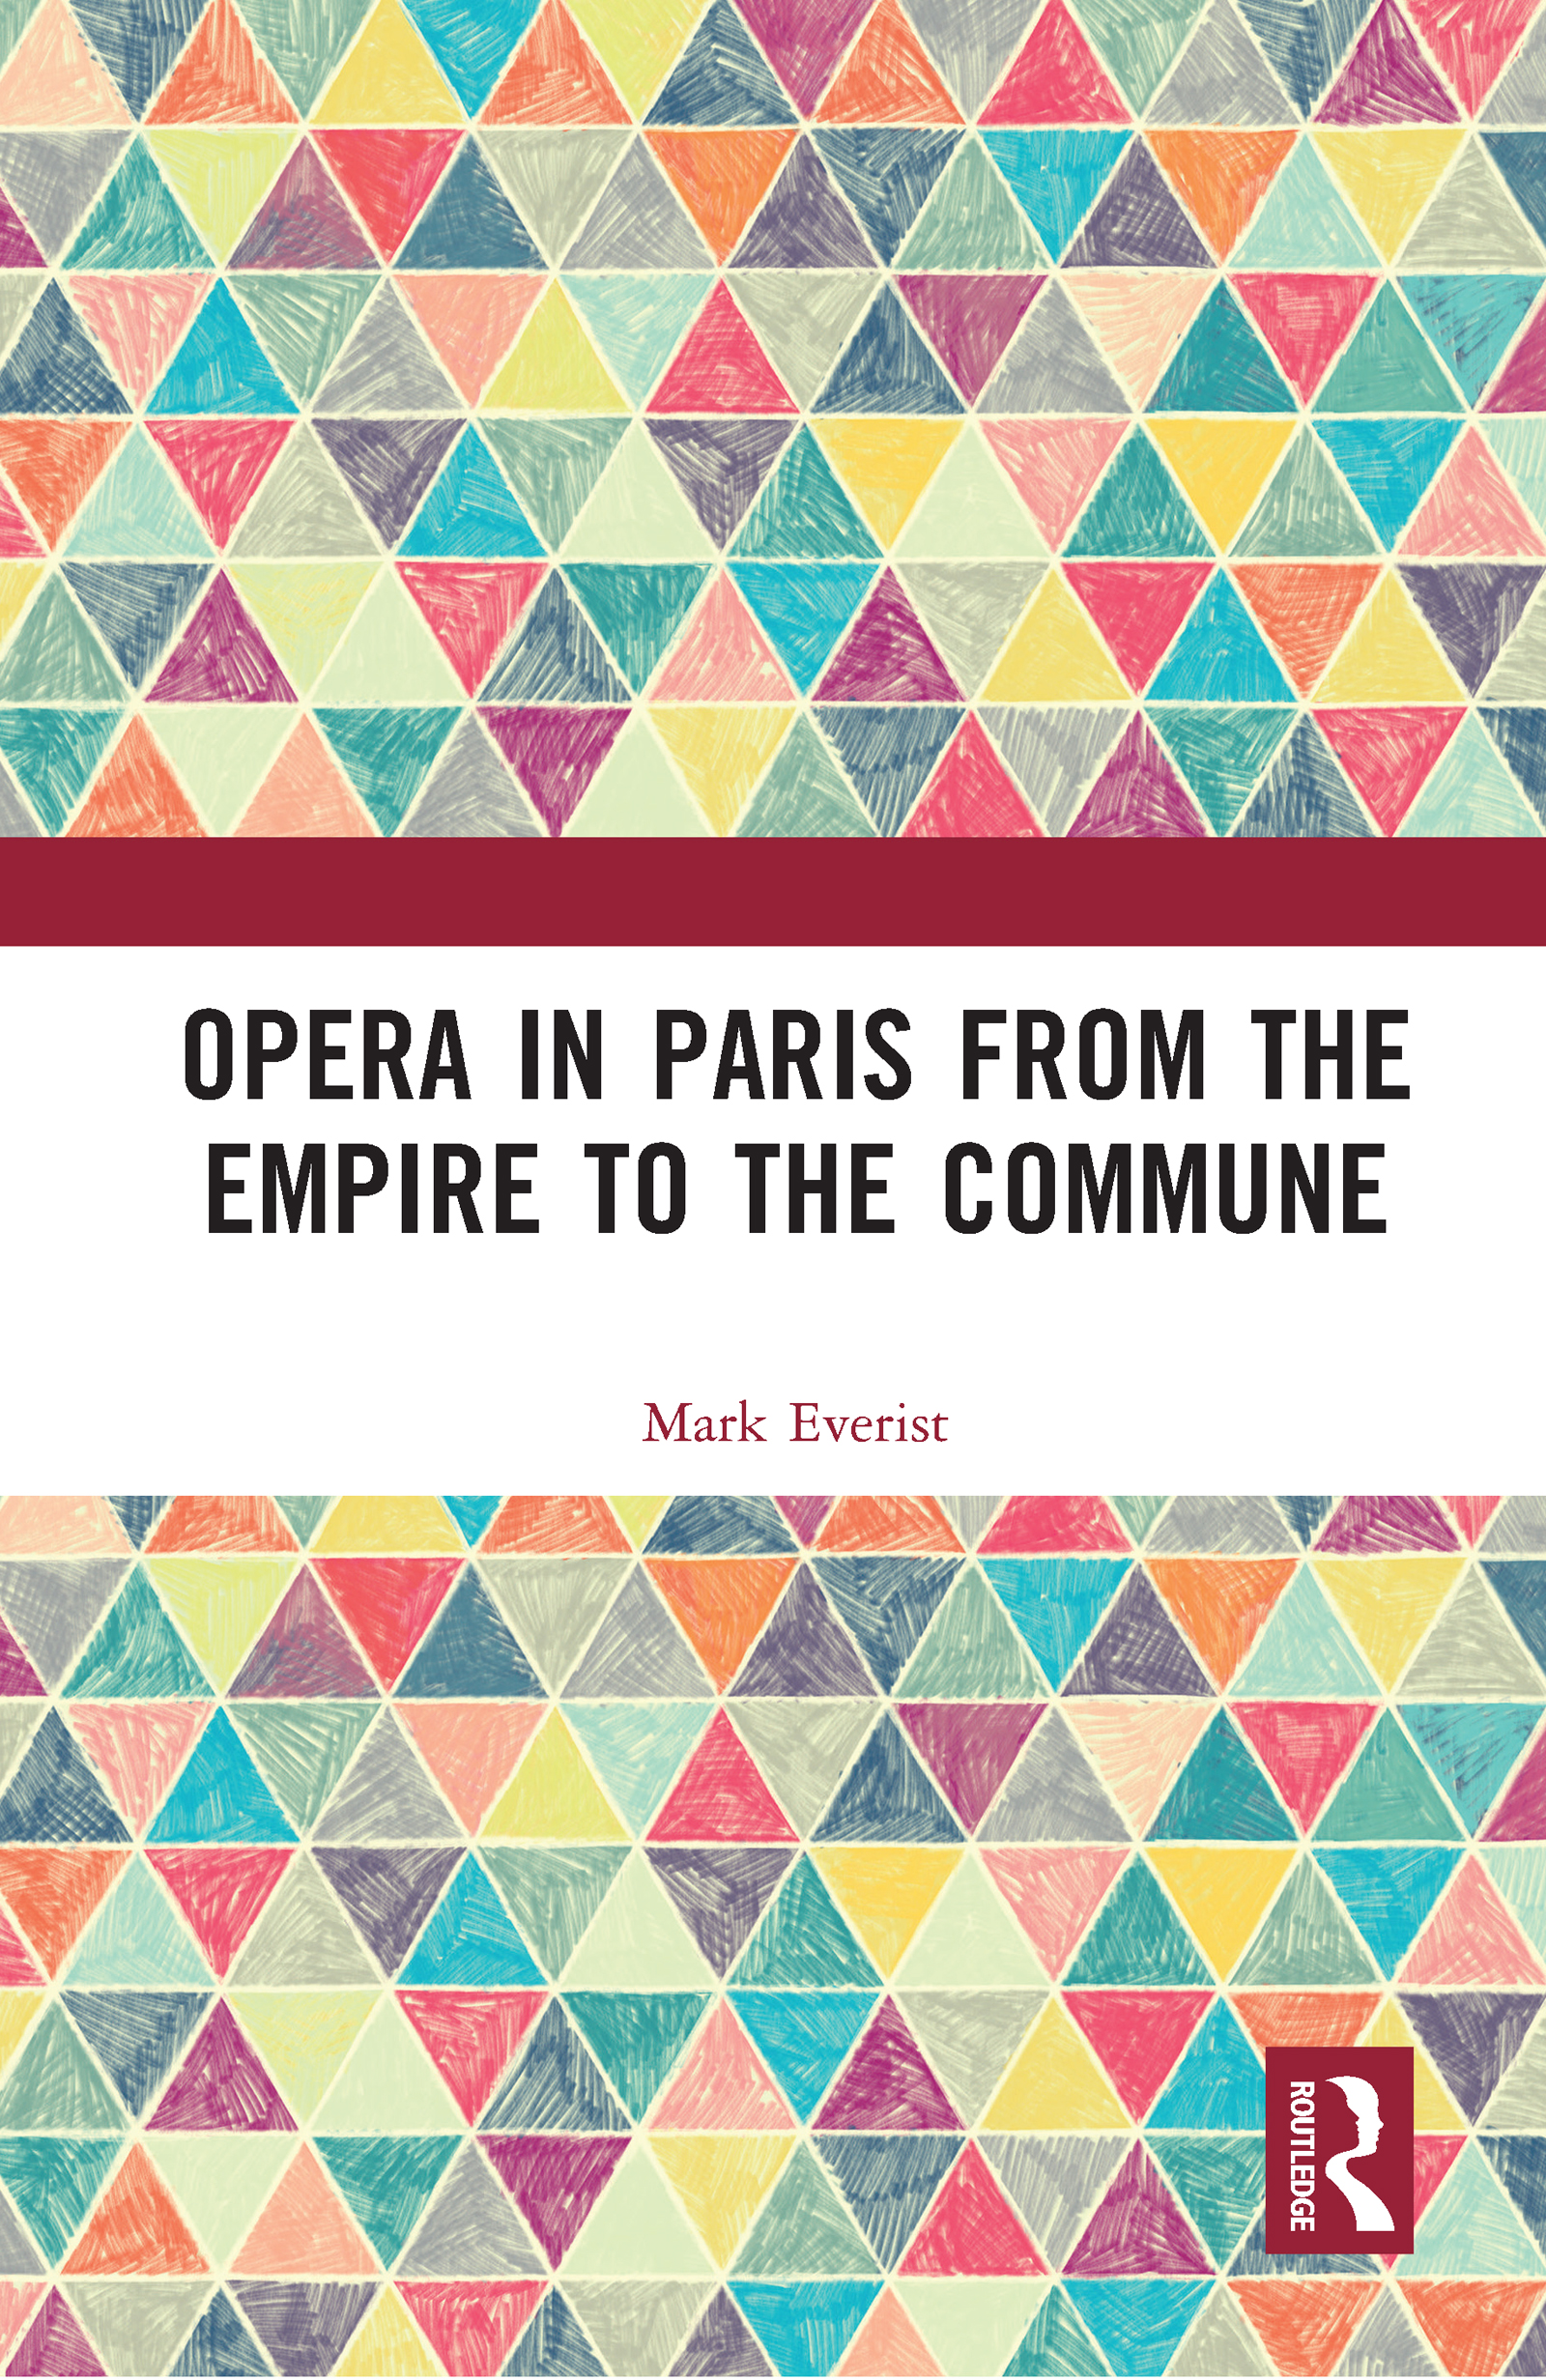 Opera in Paris from the Empire to the Commune